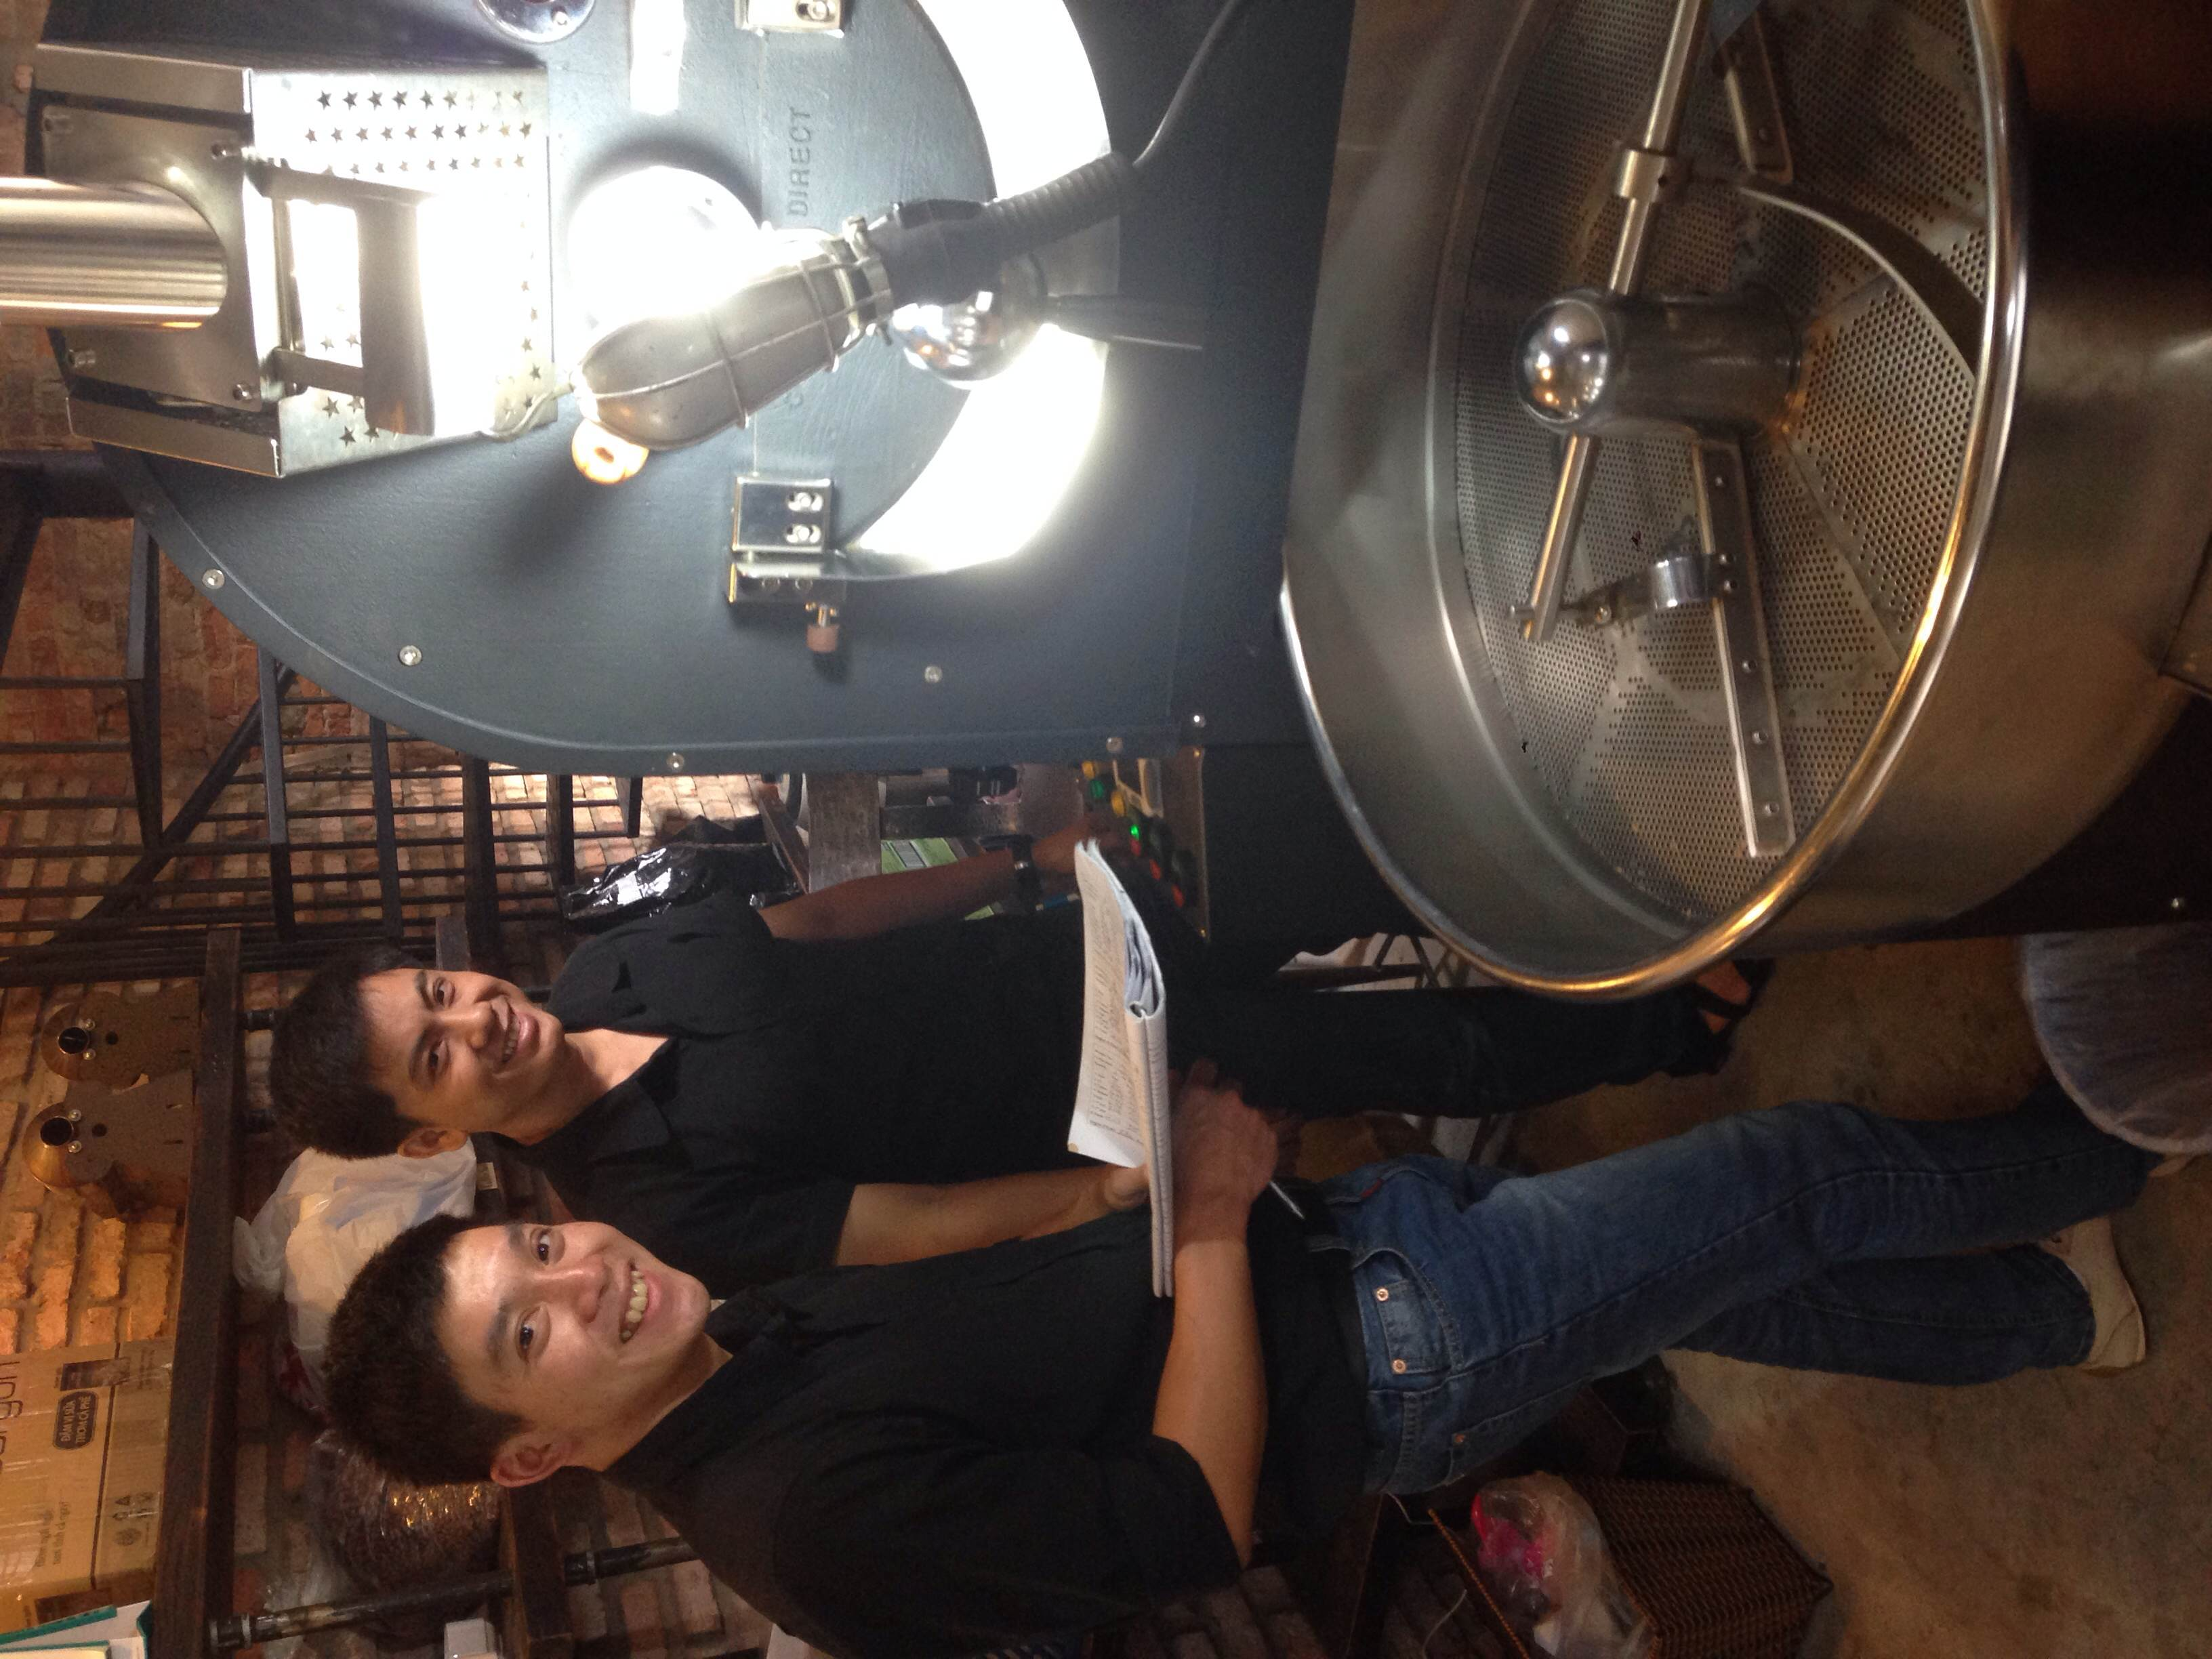 Proud Phong & Truong driving the big machine by themselves.